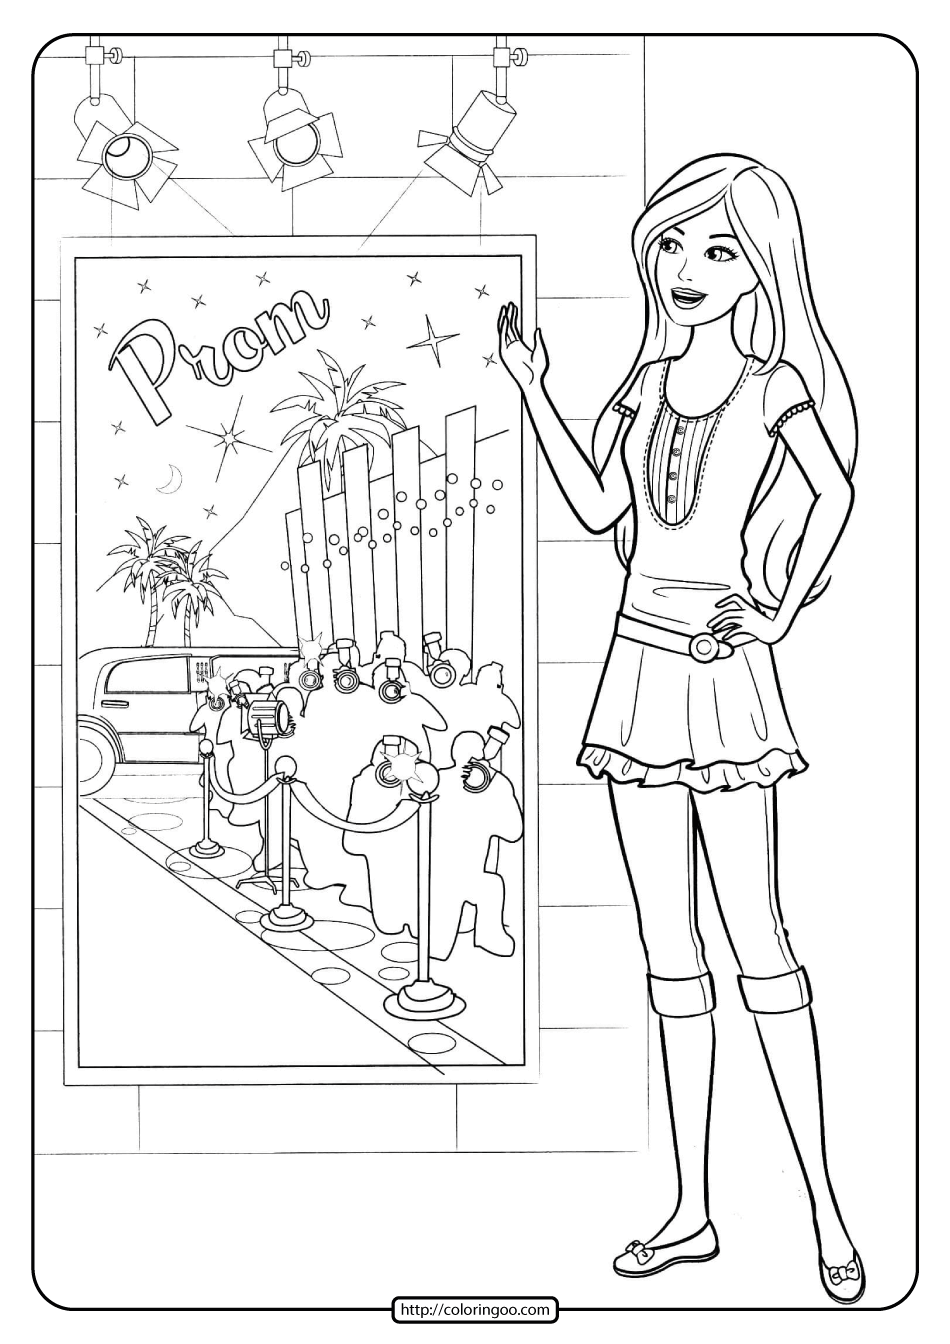 Printable Barbie Fashion Star Coloring Pages 19